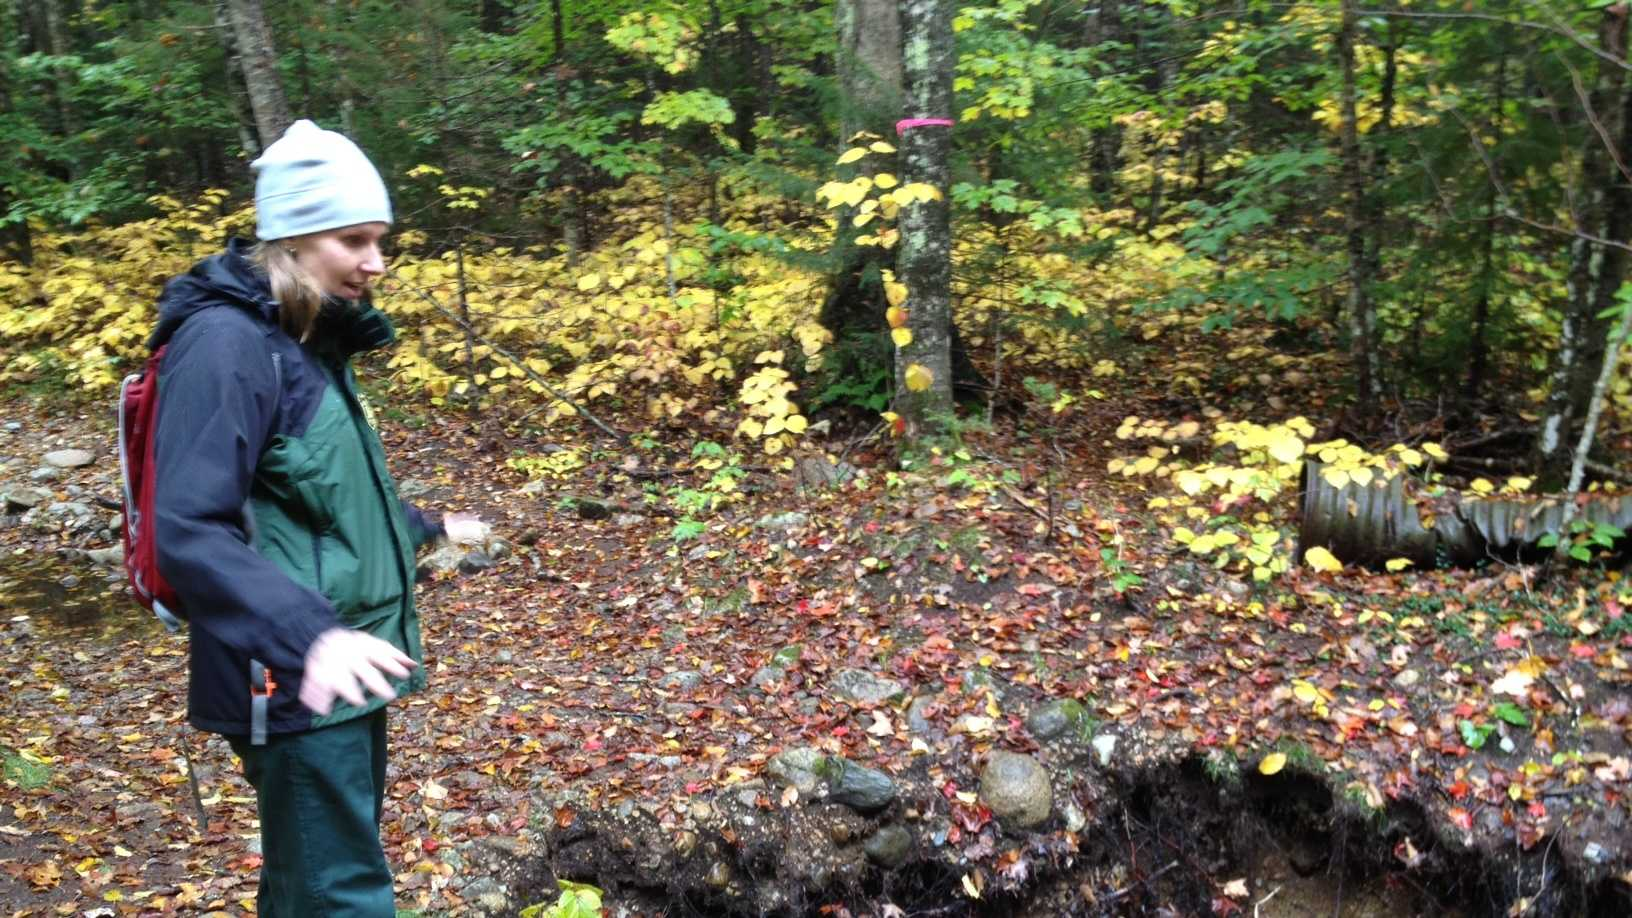 Officials tour damage done to the White Mountain National Forest by Tropical Storm Irene.